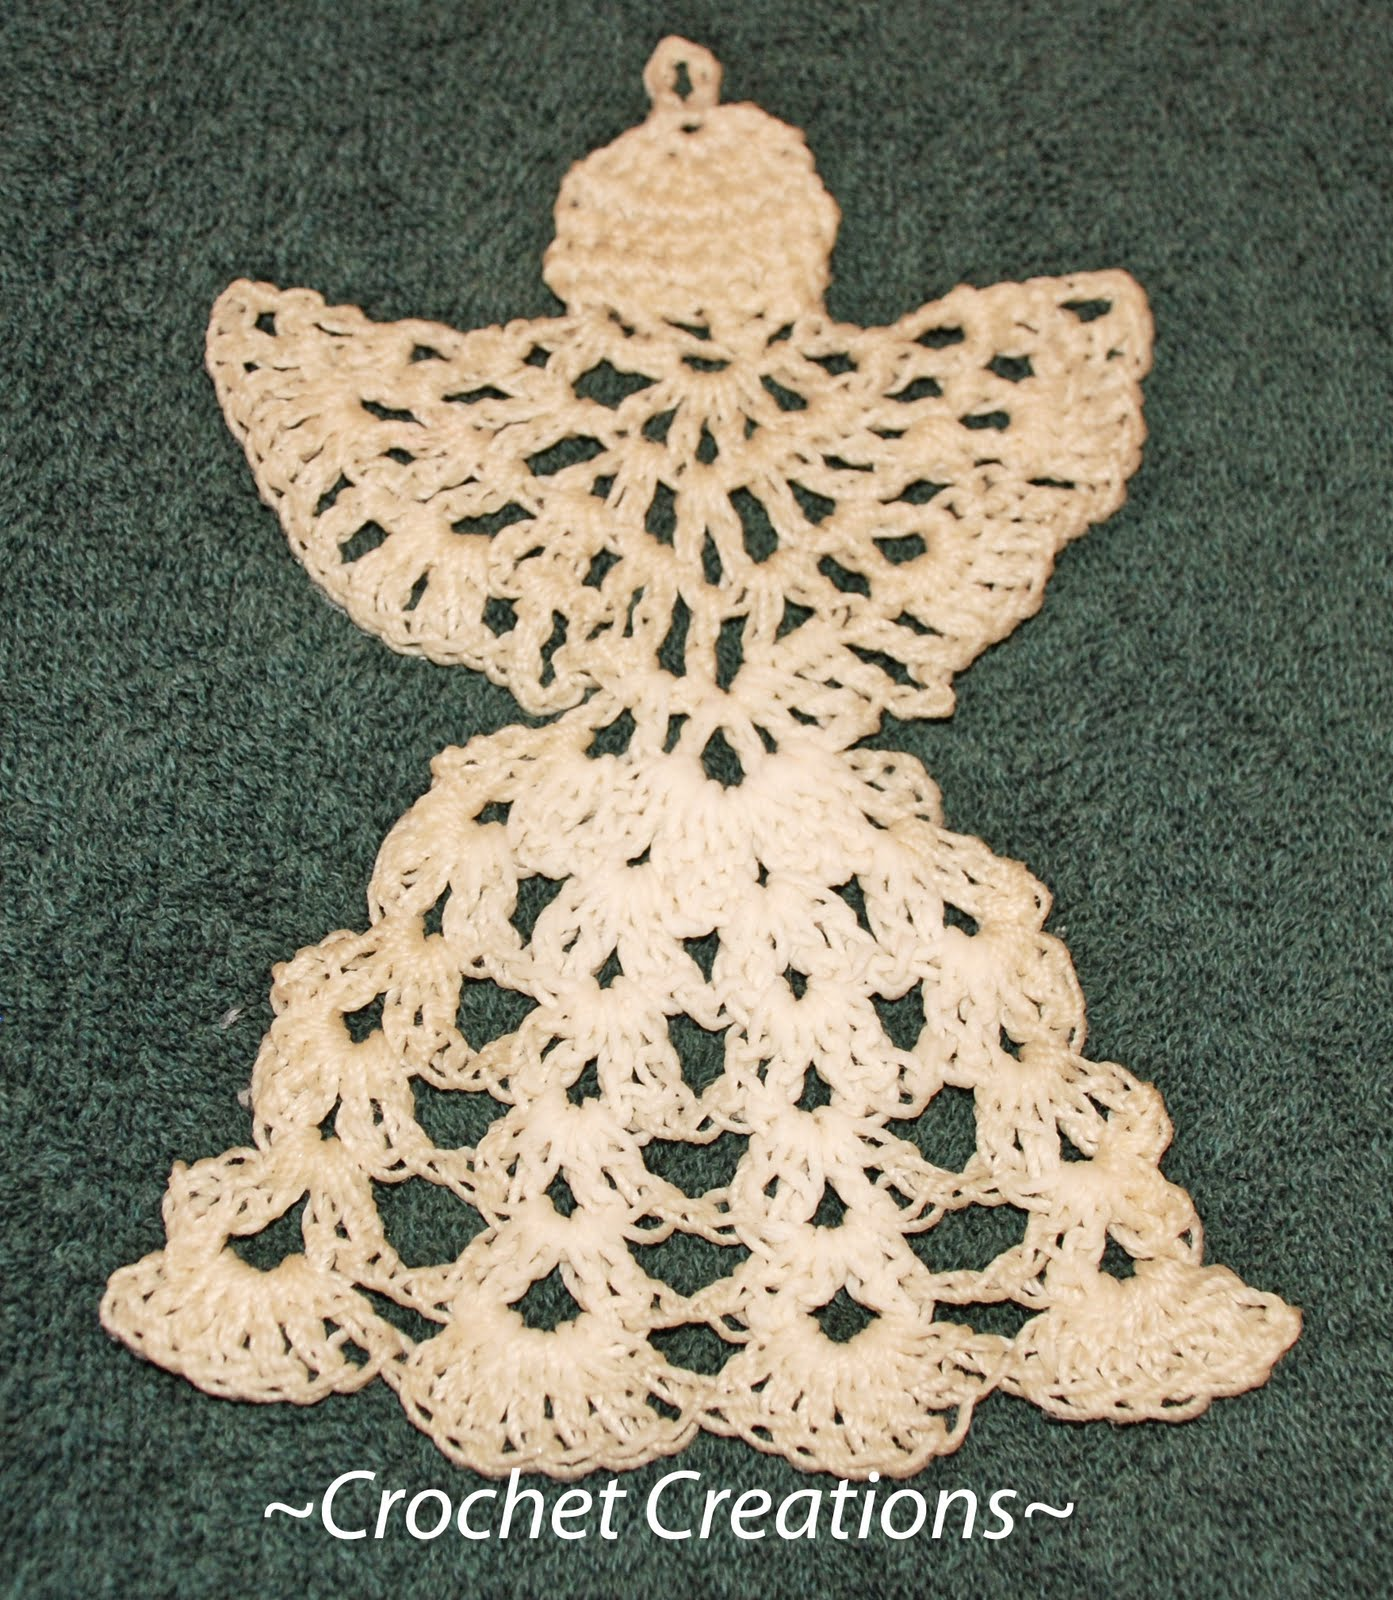 Crochet Ornaments : FREE CROCHET ORNAMENTS PATTERNS - Crochet and Knitting Patterns